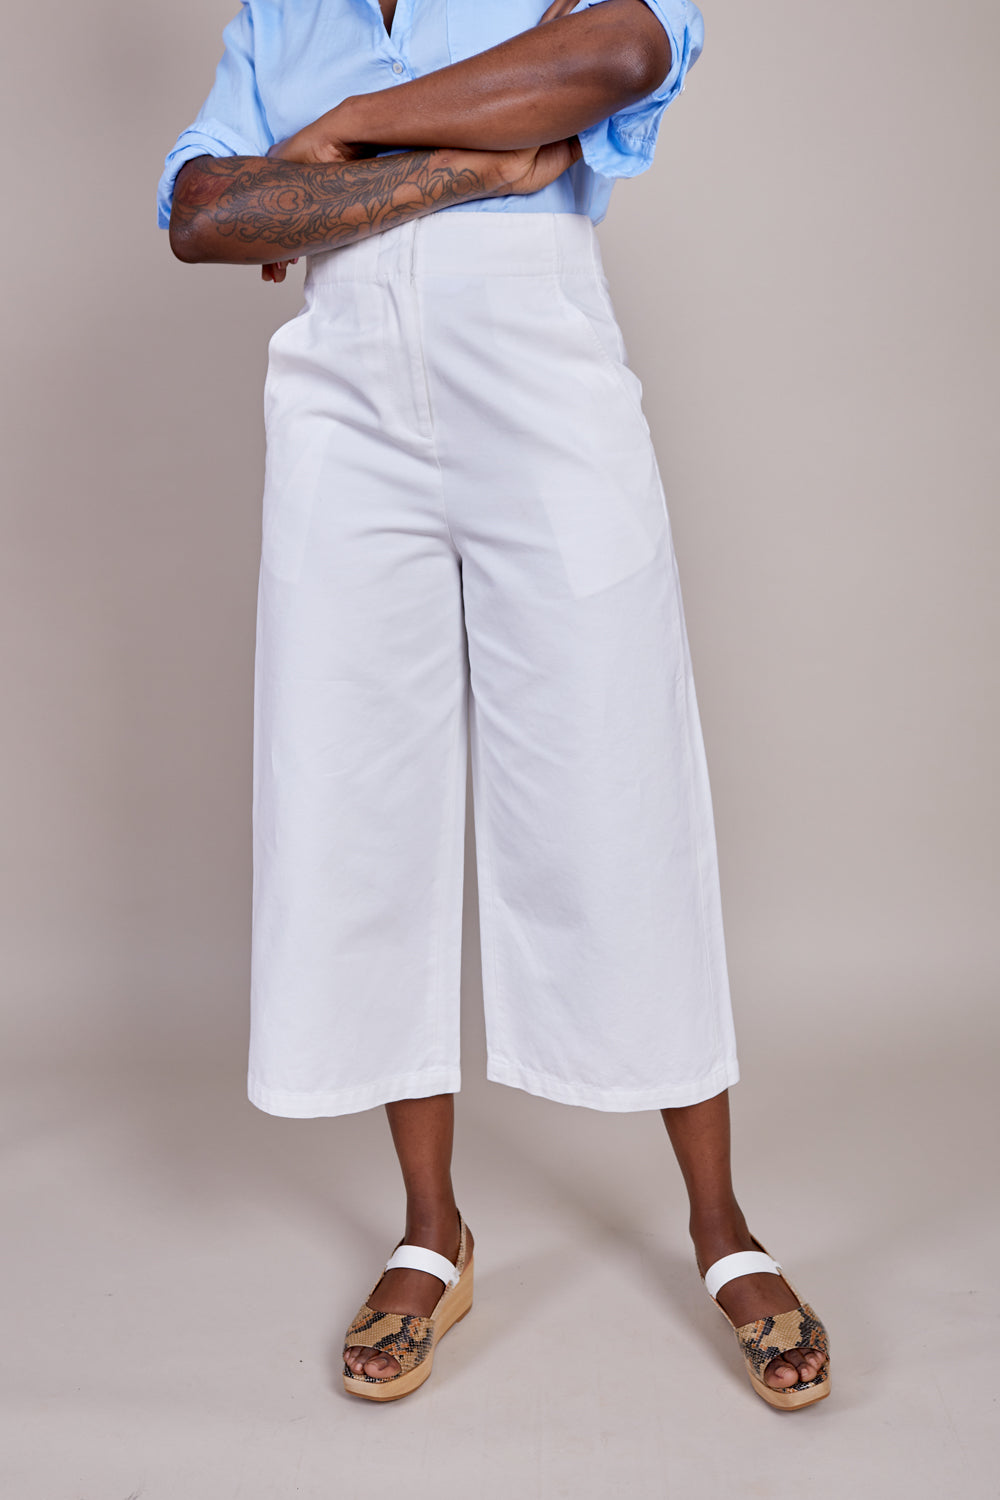 Tibi Twill Cropped Jean in White - Vert & Vogue